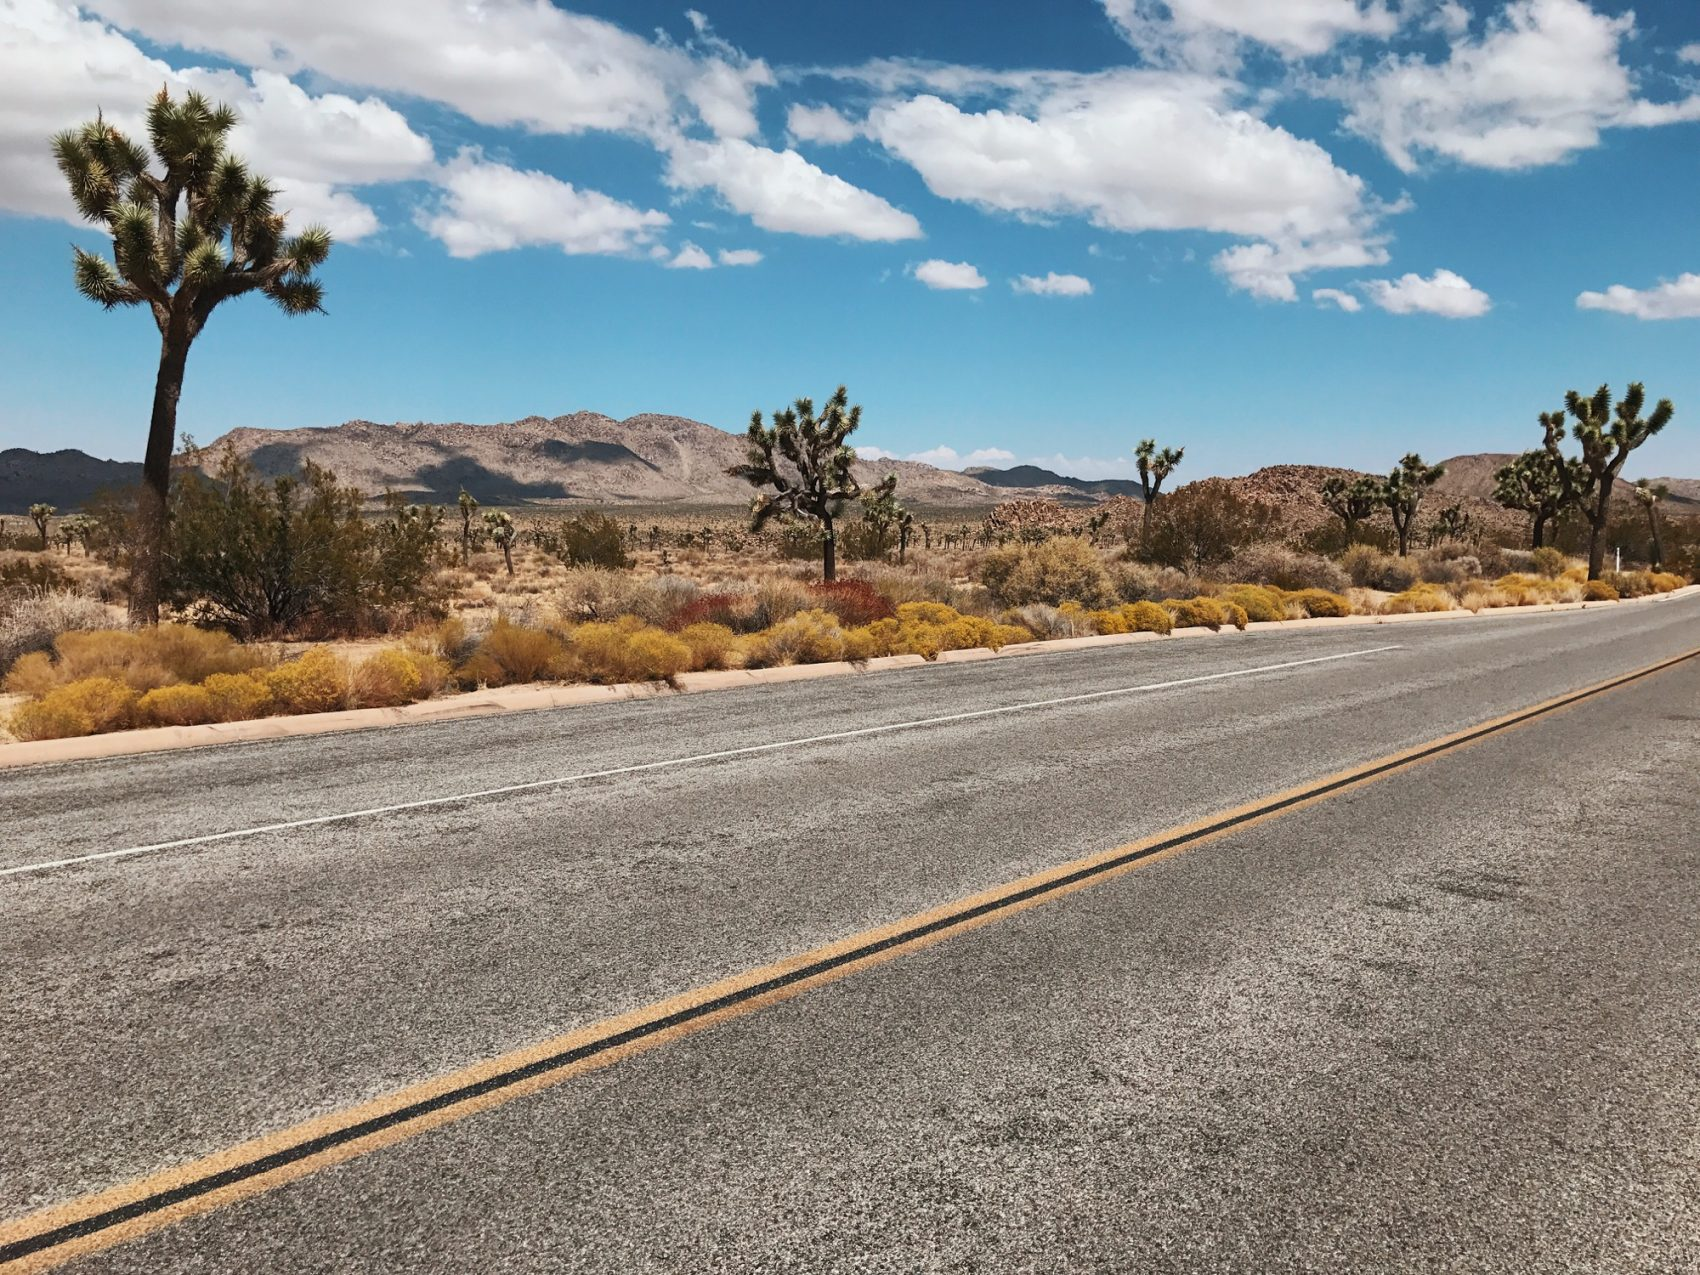 USA road trip, desert road trip, road trip itinerary, USA travel, travel ideas, joshua trees